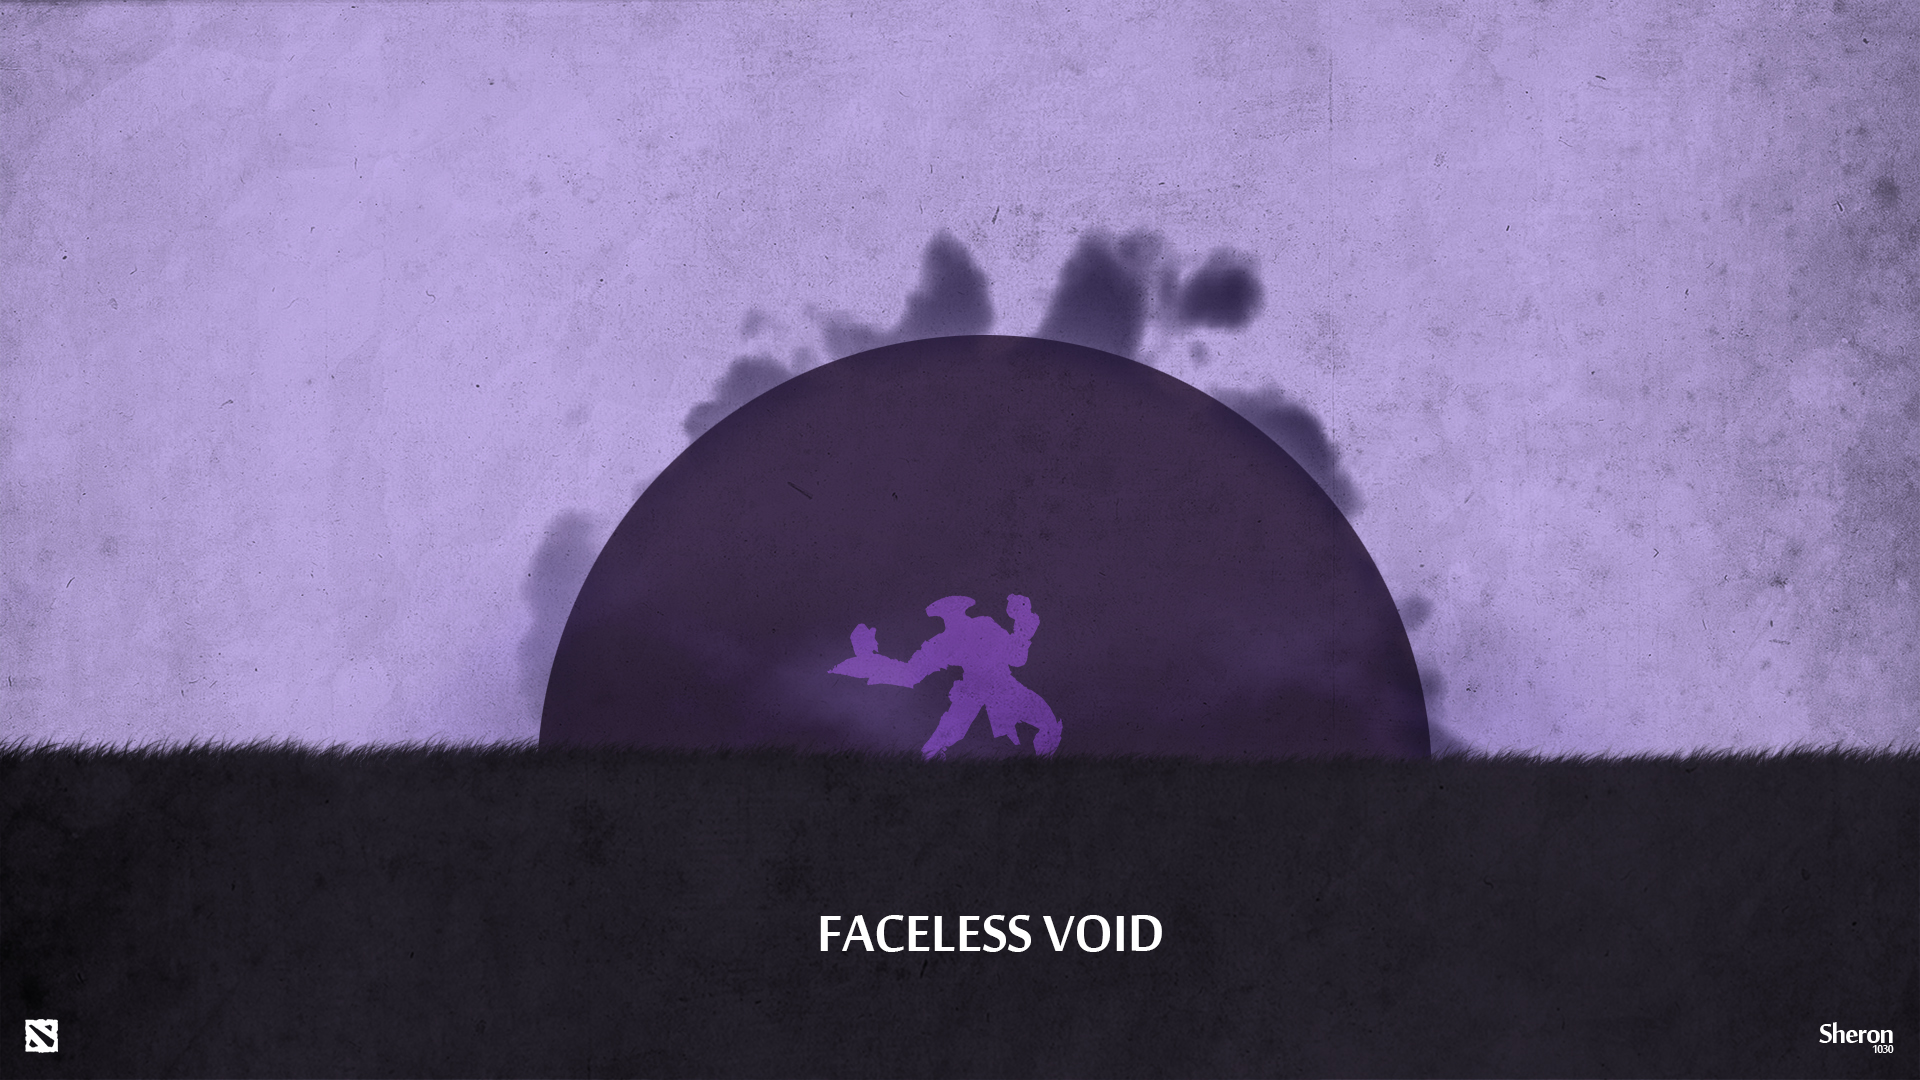 Faceless Void Dota Wallpaper